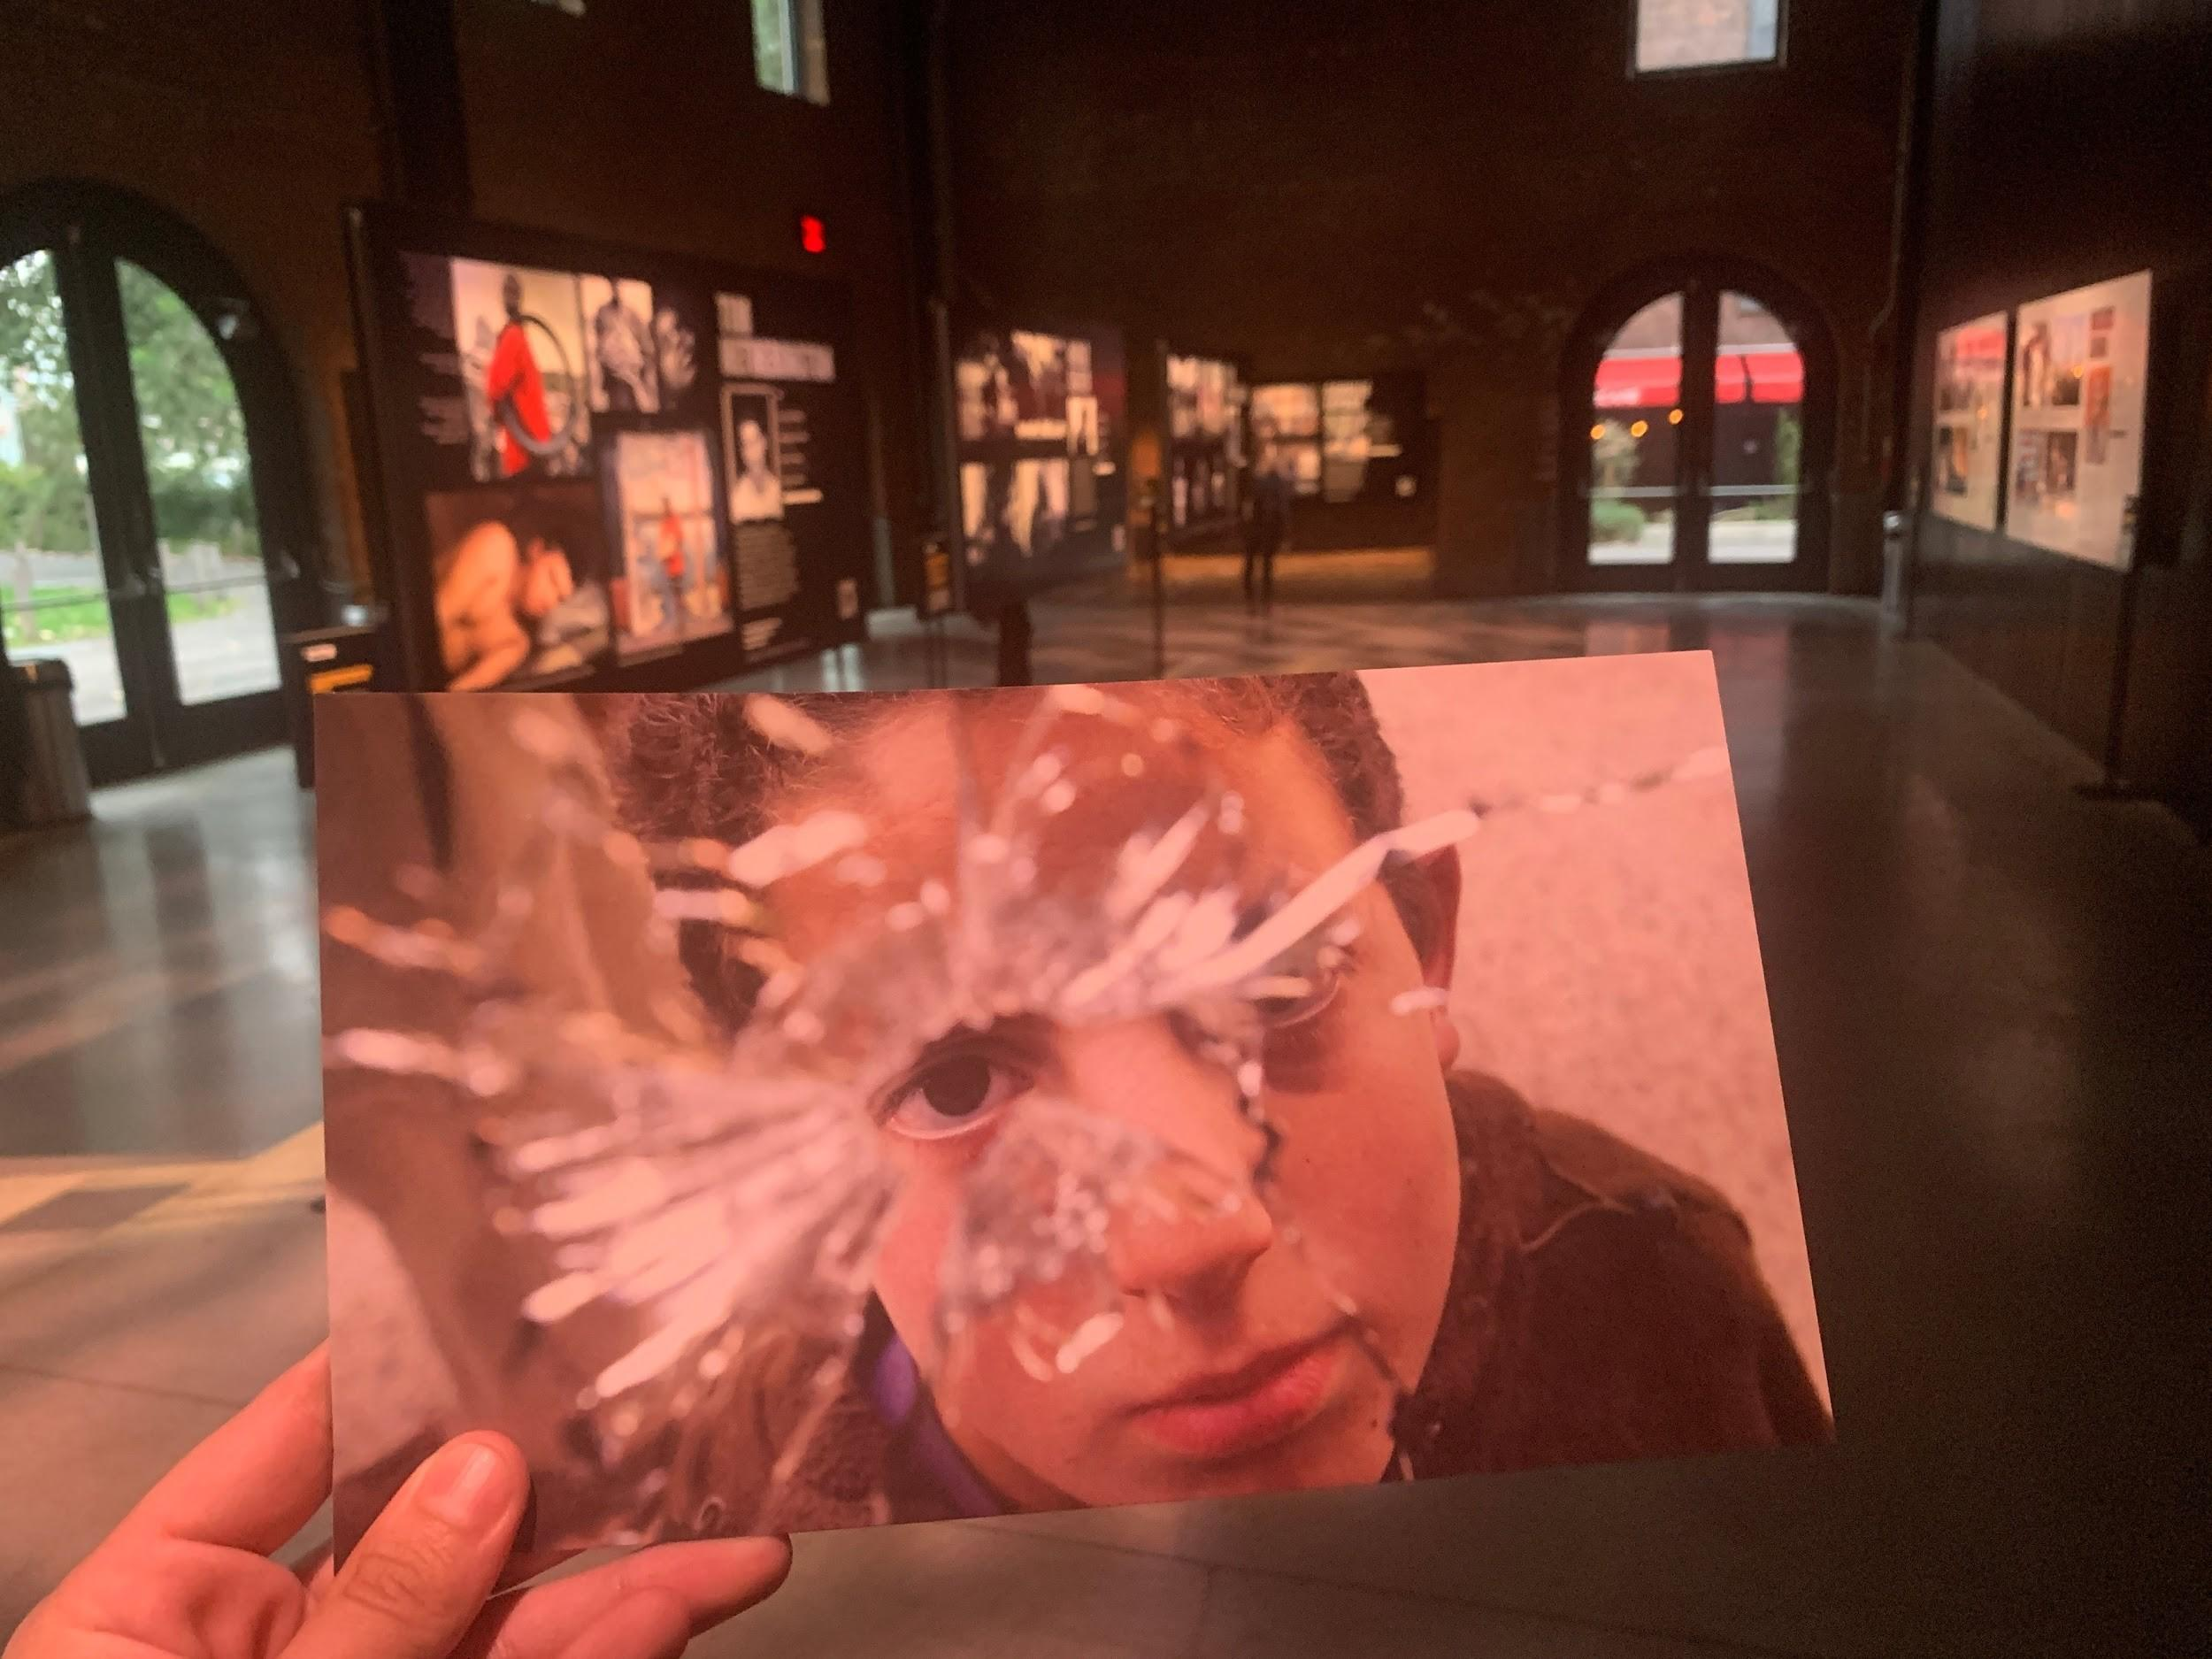 """The """"Journalists Under Fire"""" exhibition is seen at Photoville in New York. (CPJ/Ahmed Zidan)"""